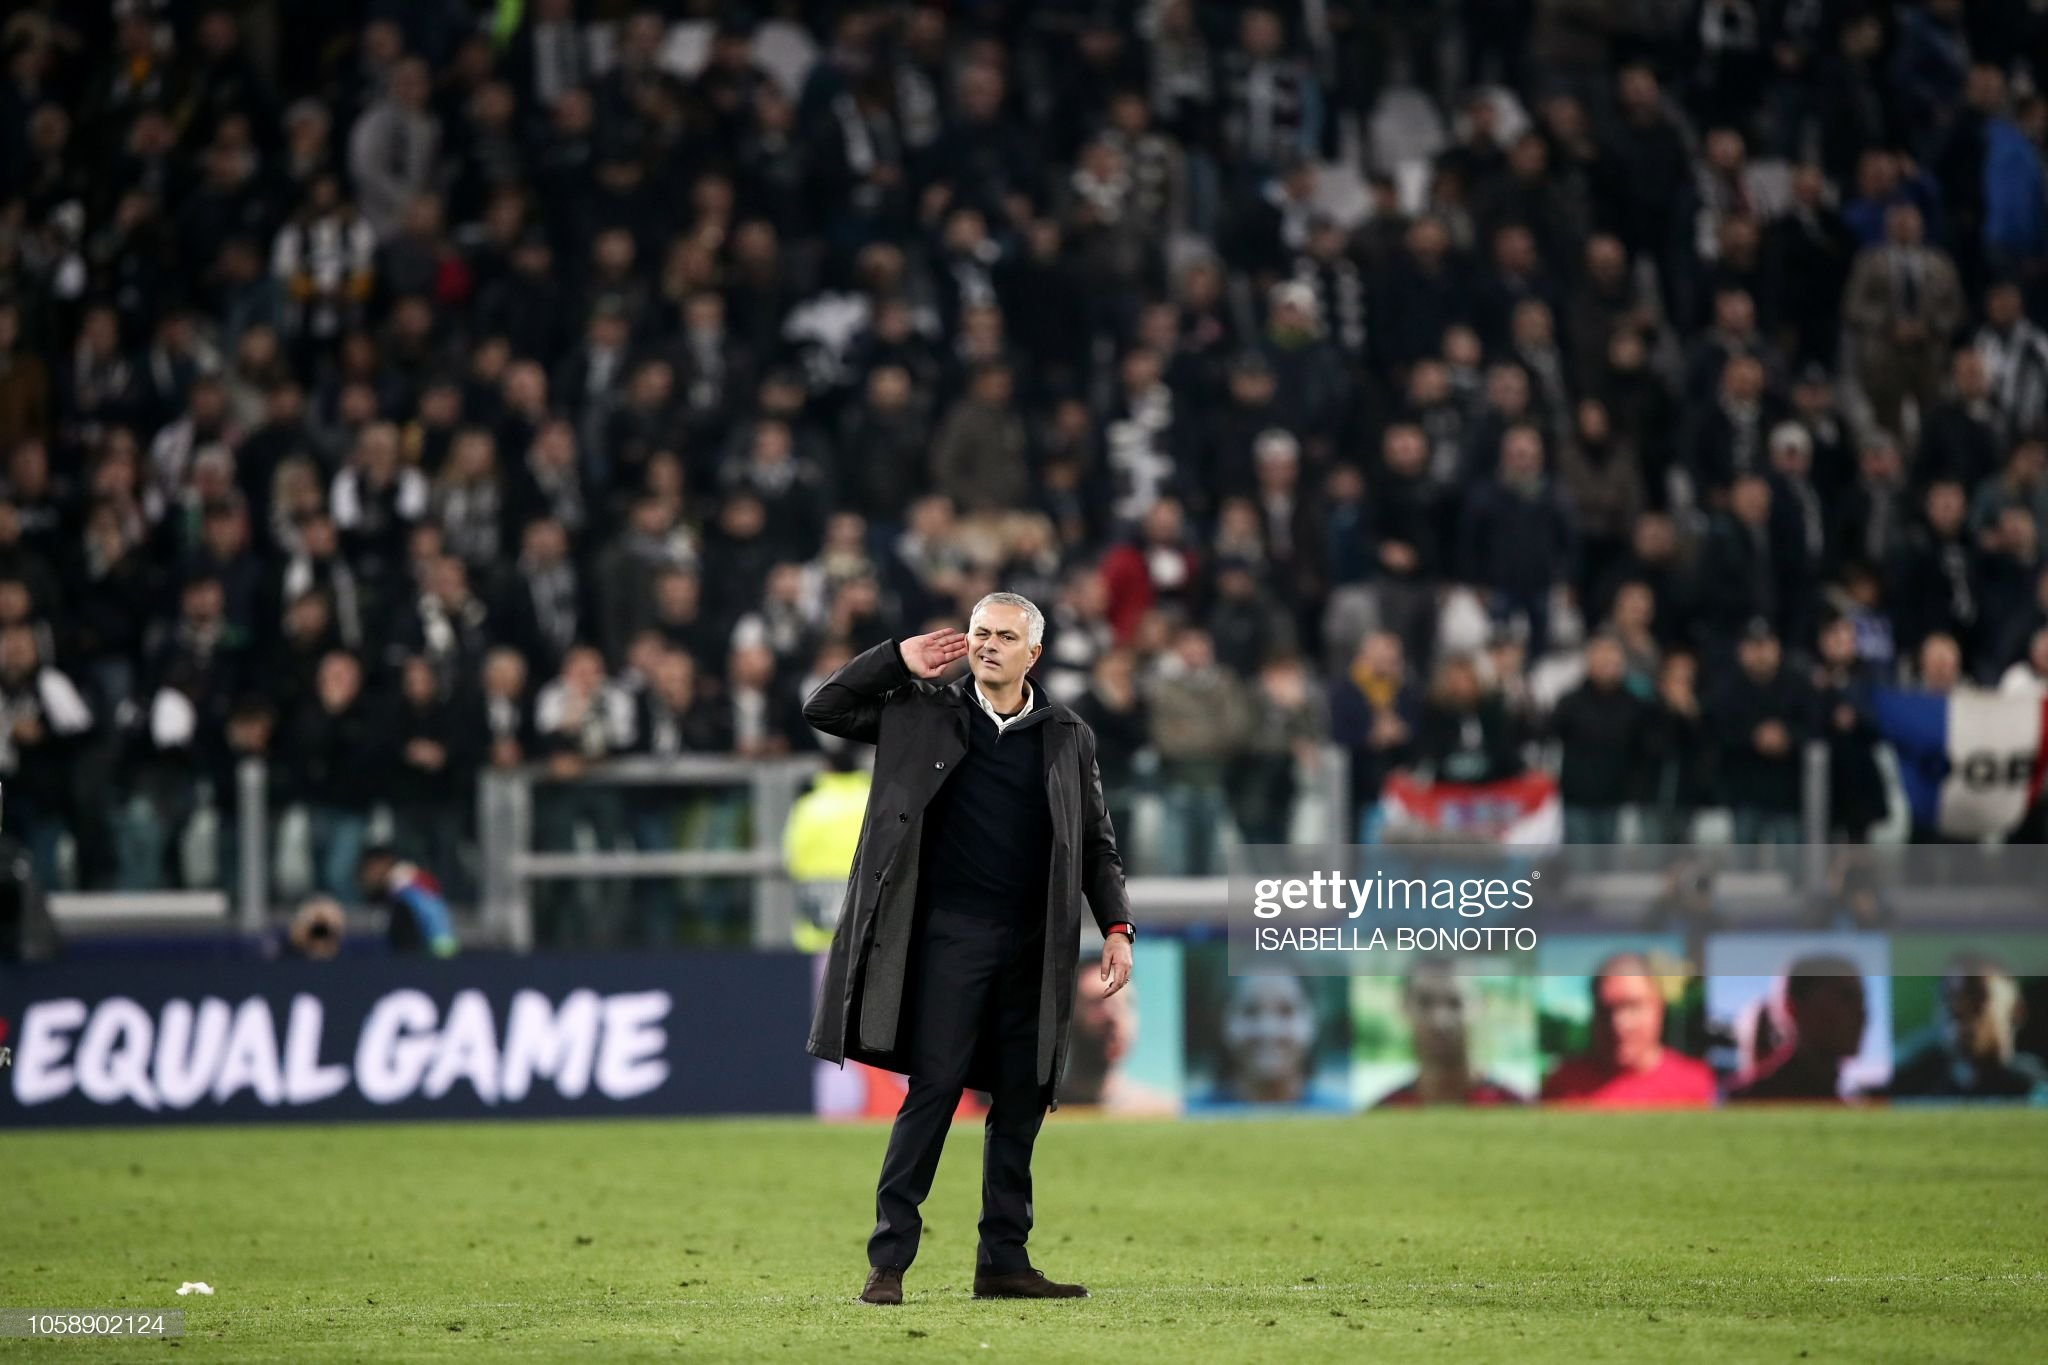 FBL-EUR-C1-JUVENTUS-MAN UTD : News Photo